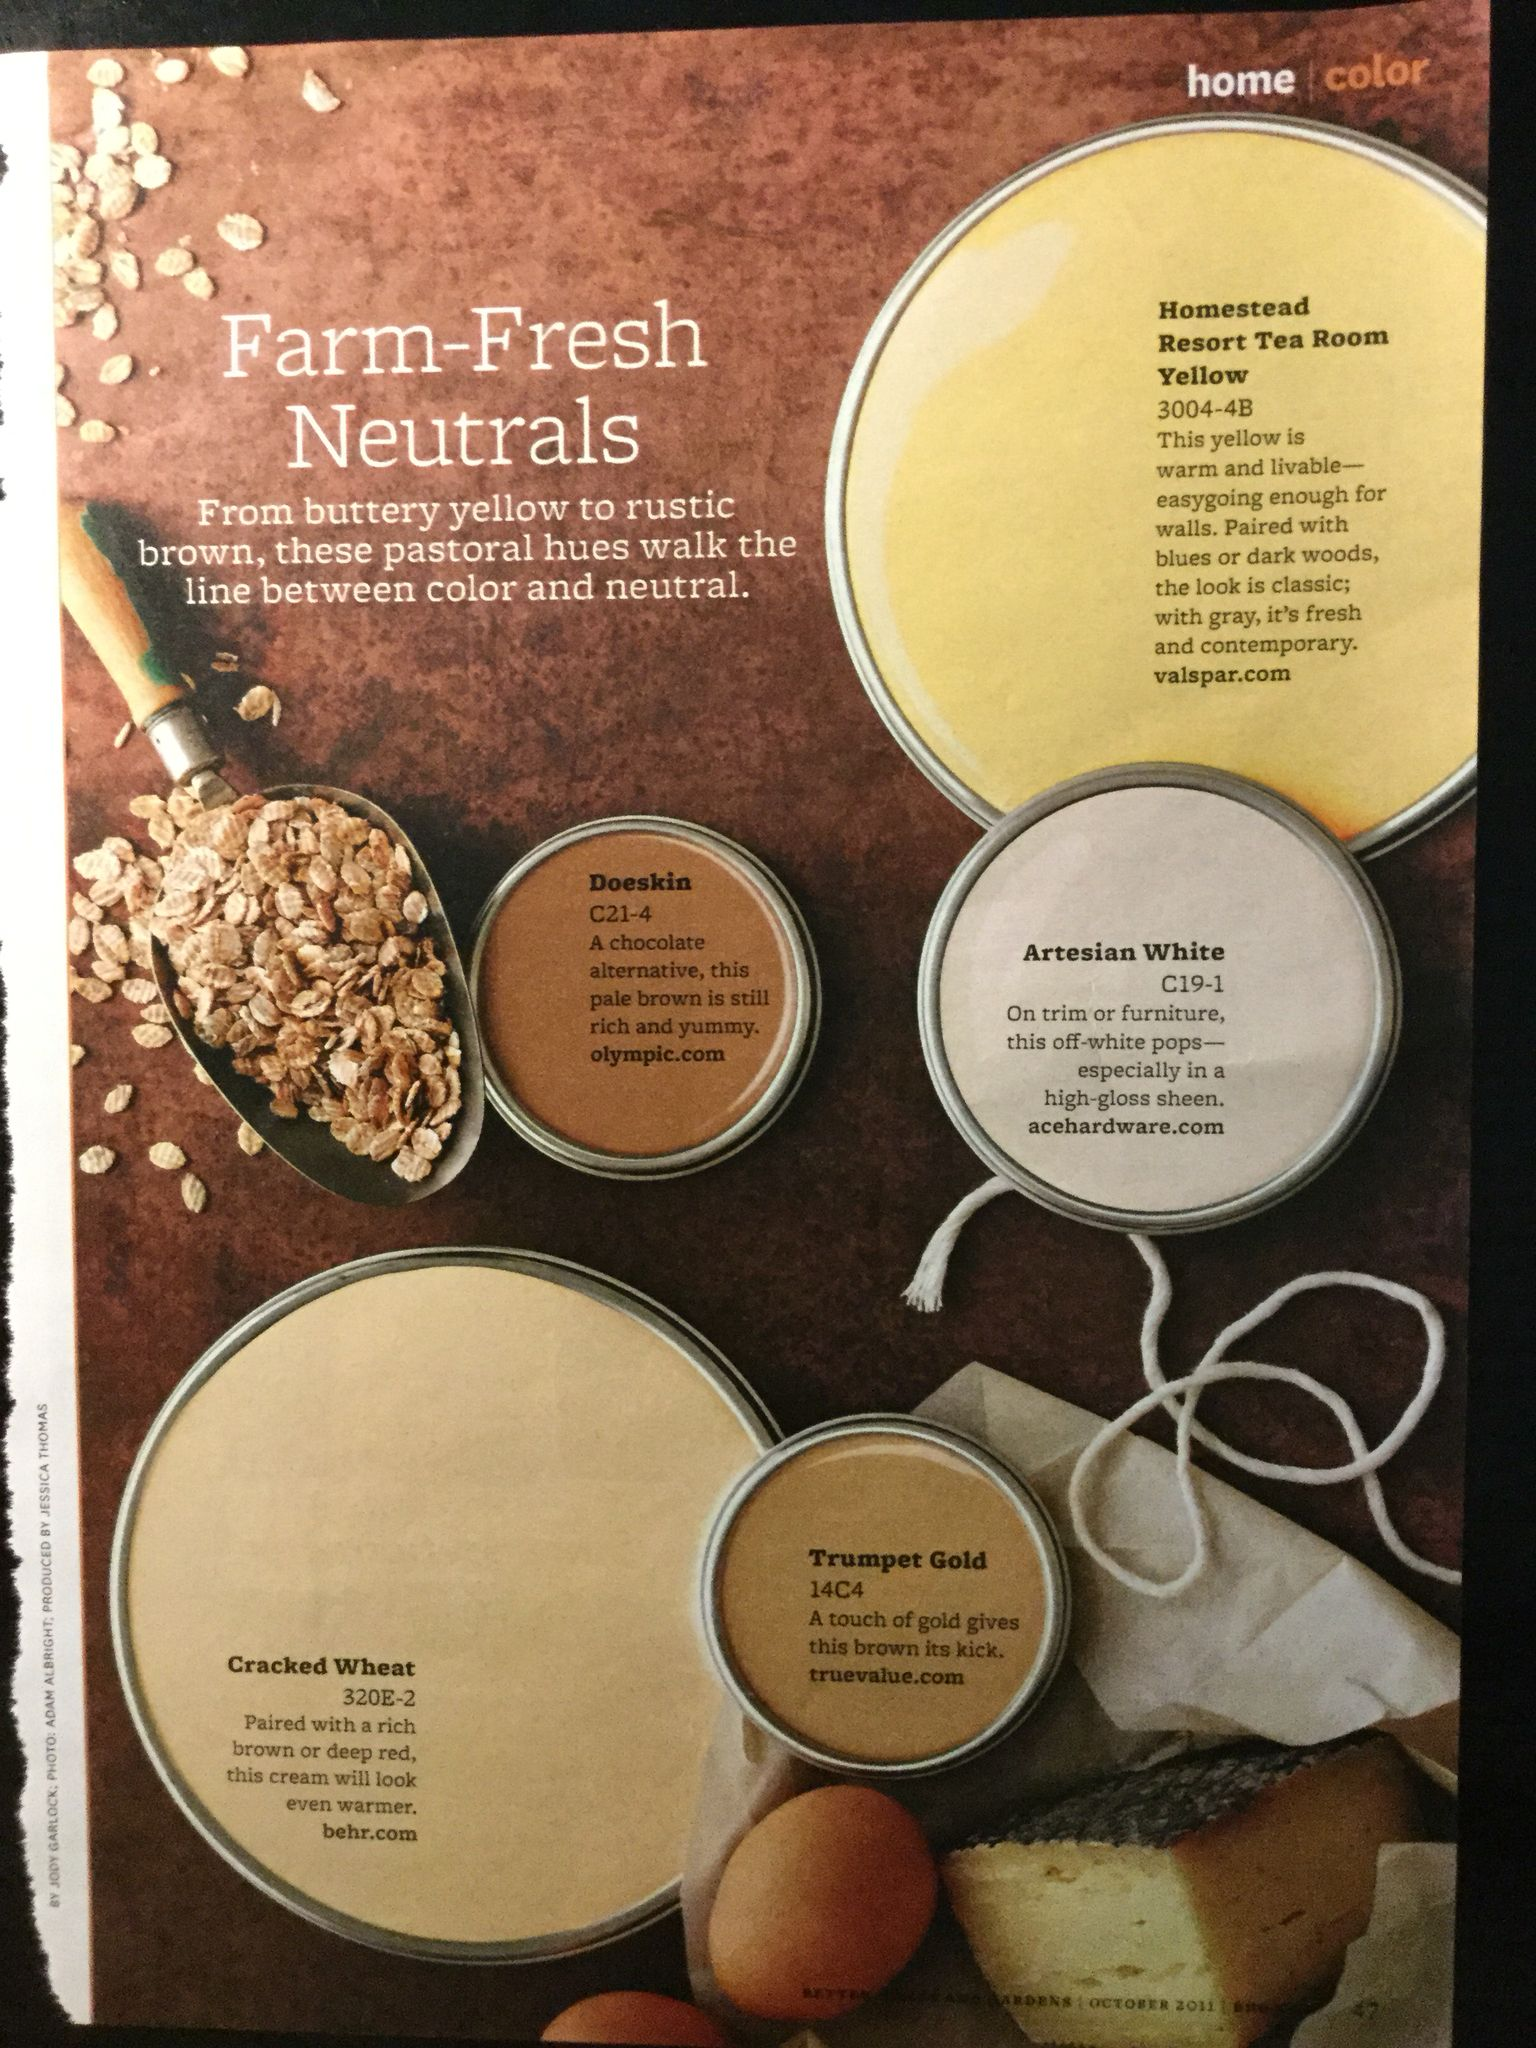 Paint Color Palette Farm Fresh Neuatral From Buttery Yellow To Rustic